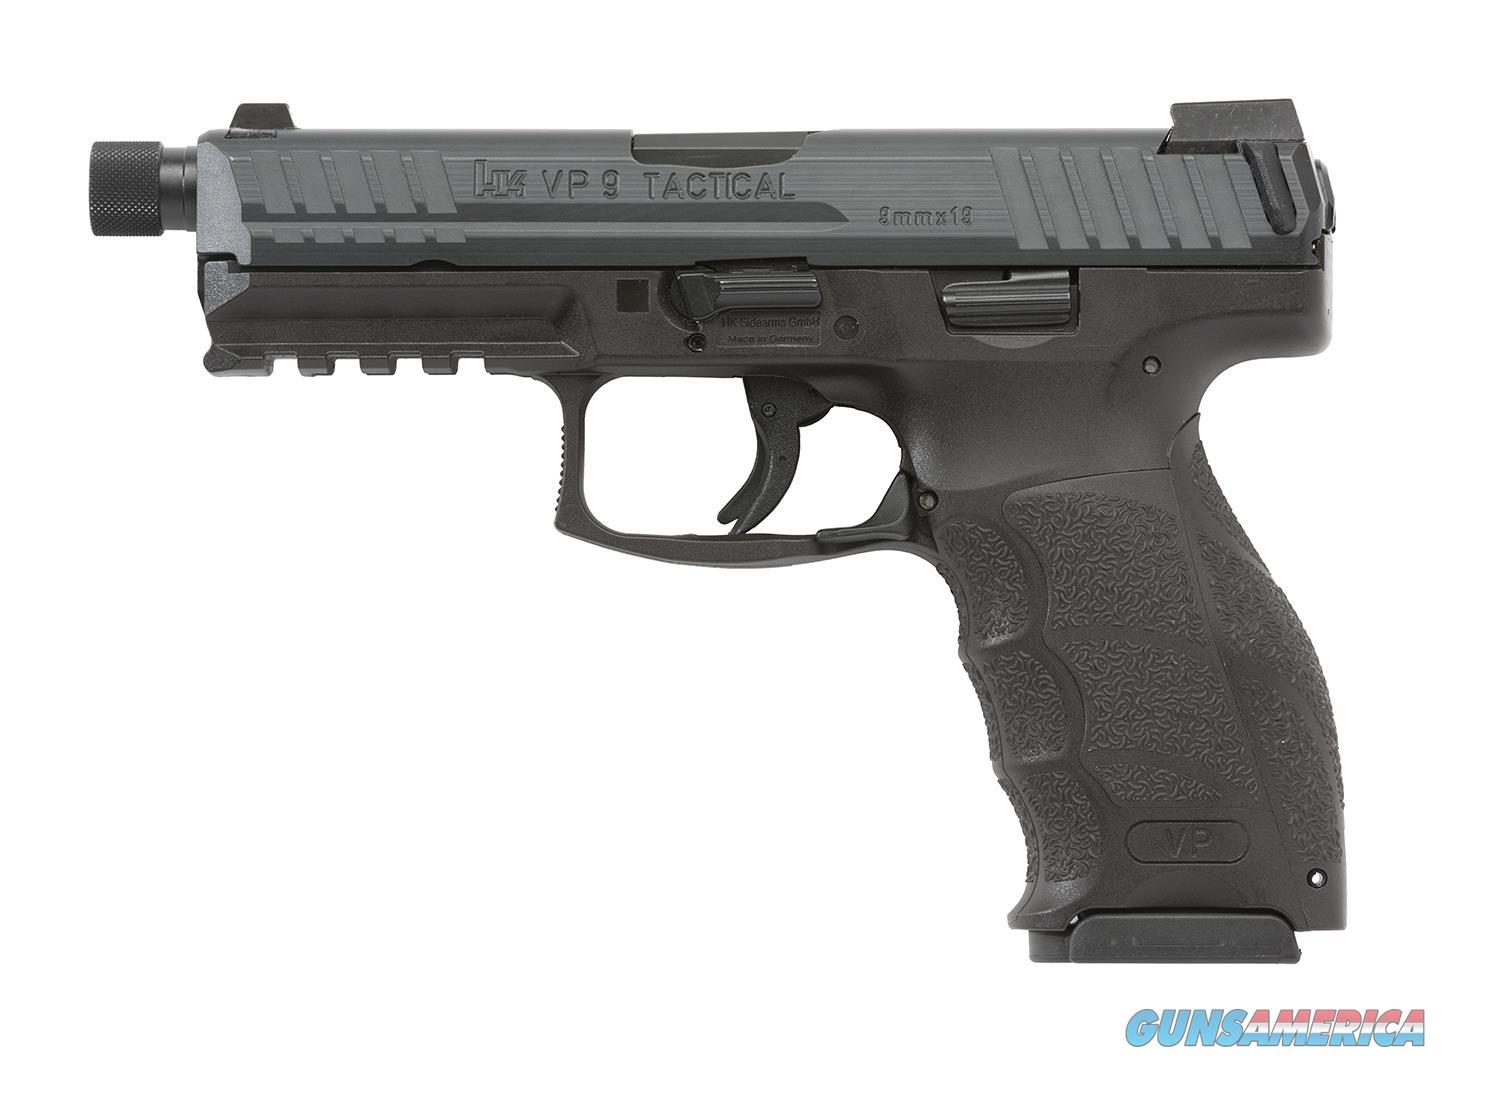 "HK VP9 Tactical 9mm 4.07"" 15+1 - Threaded Barrel***new in box***  Guns > Pistols > Heckler & Koch Pistols > Polymer Frame"